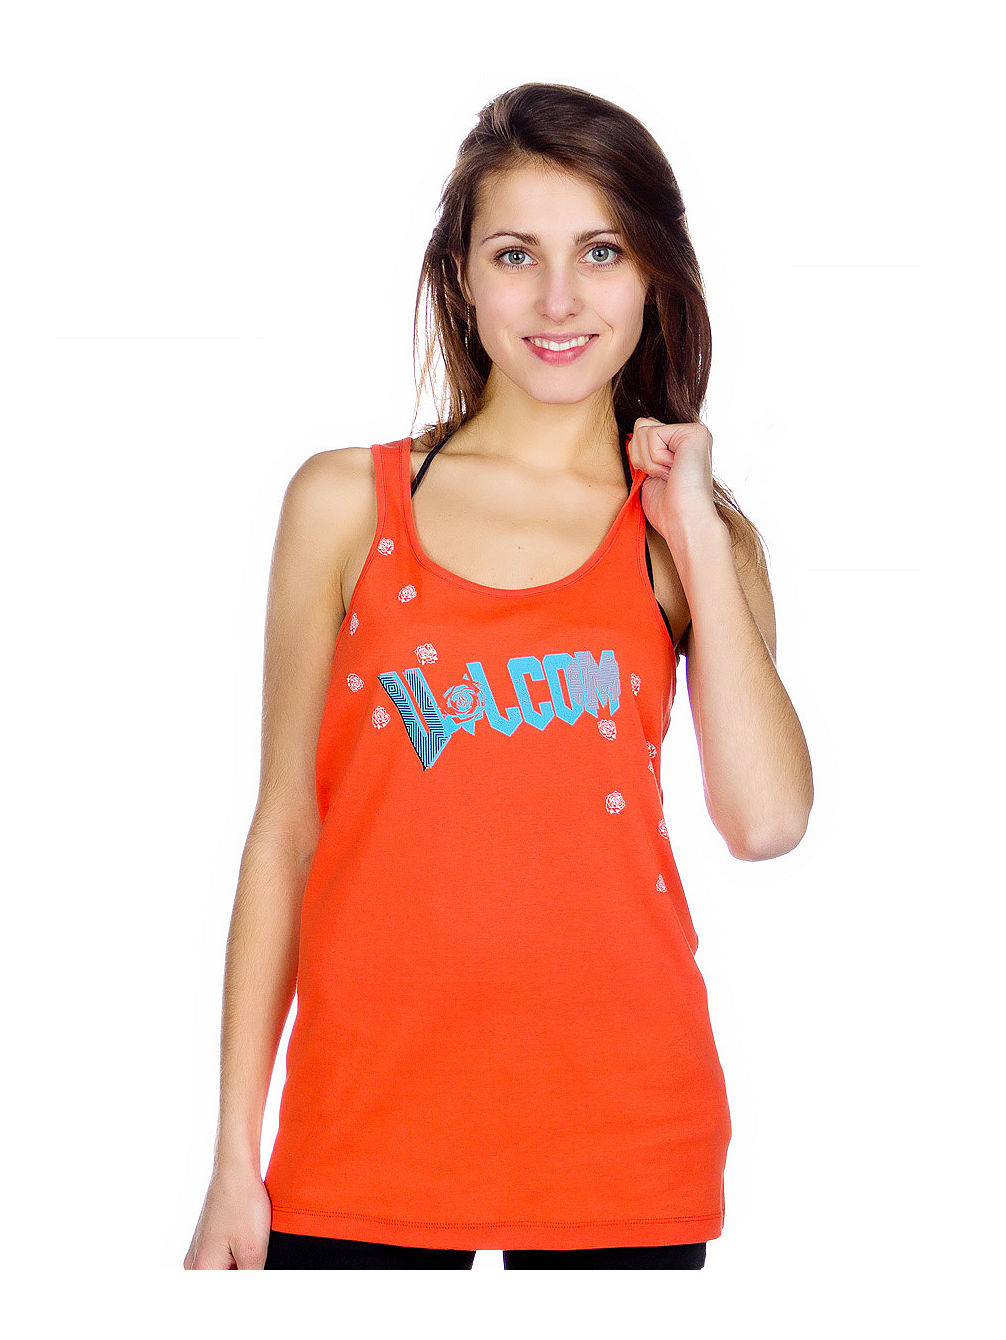 2 In 1 Tank Top Women